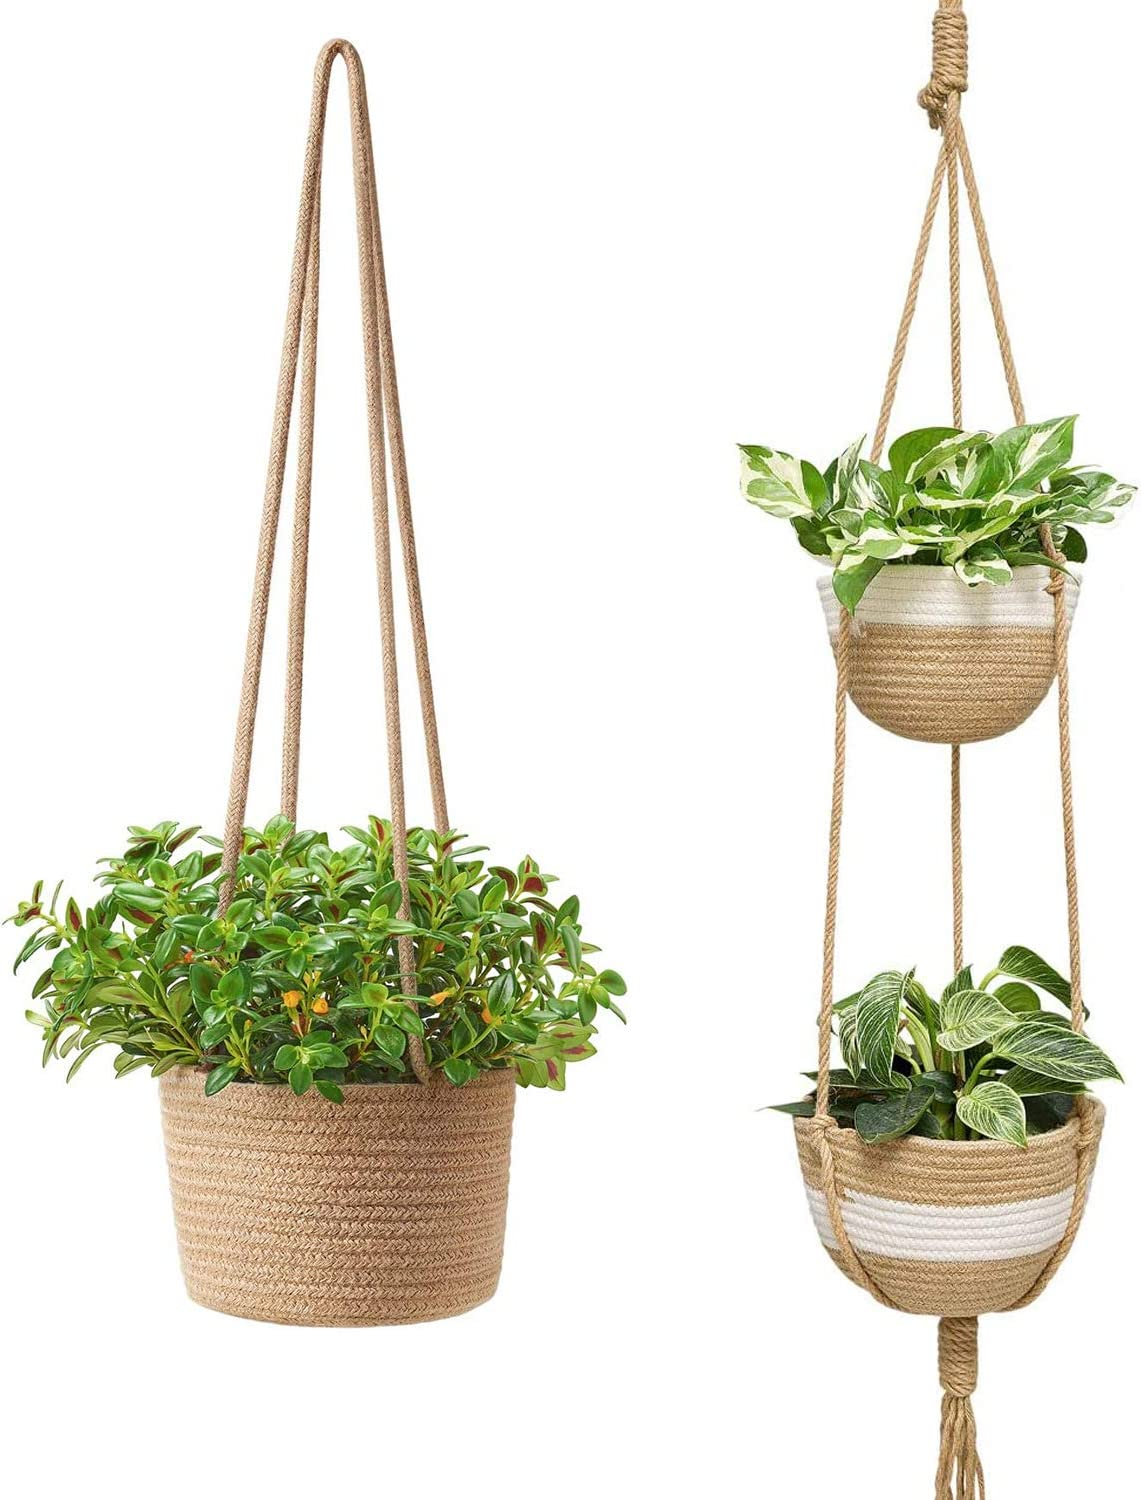 Mkono 2 Pack Jute Rope Hanging Planter Woven Plant Basket Indoor Different Tier Modern Storage Organizer Home Decor